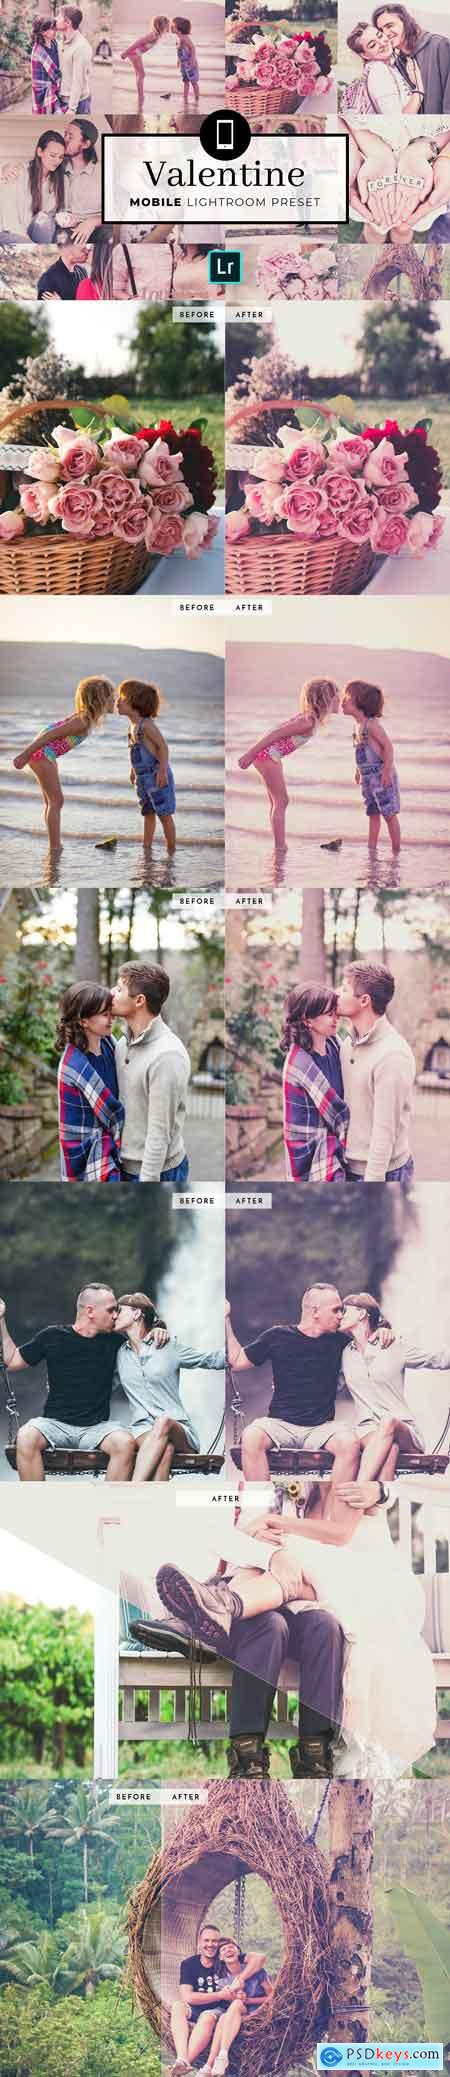 Mobile Lightroom Preset Valentine